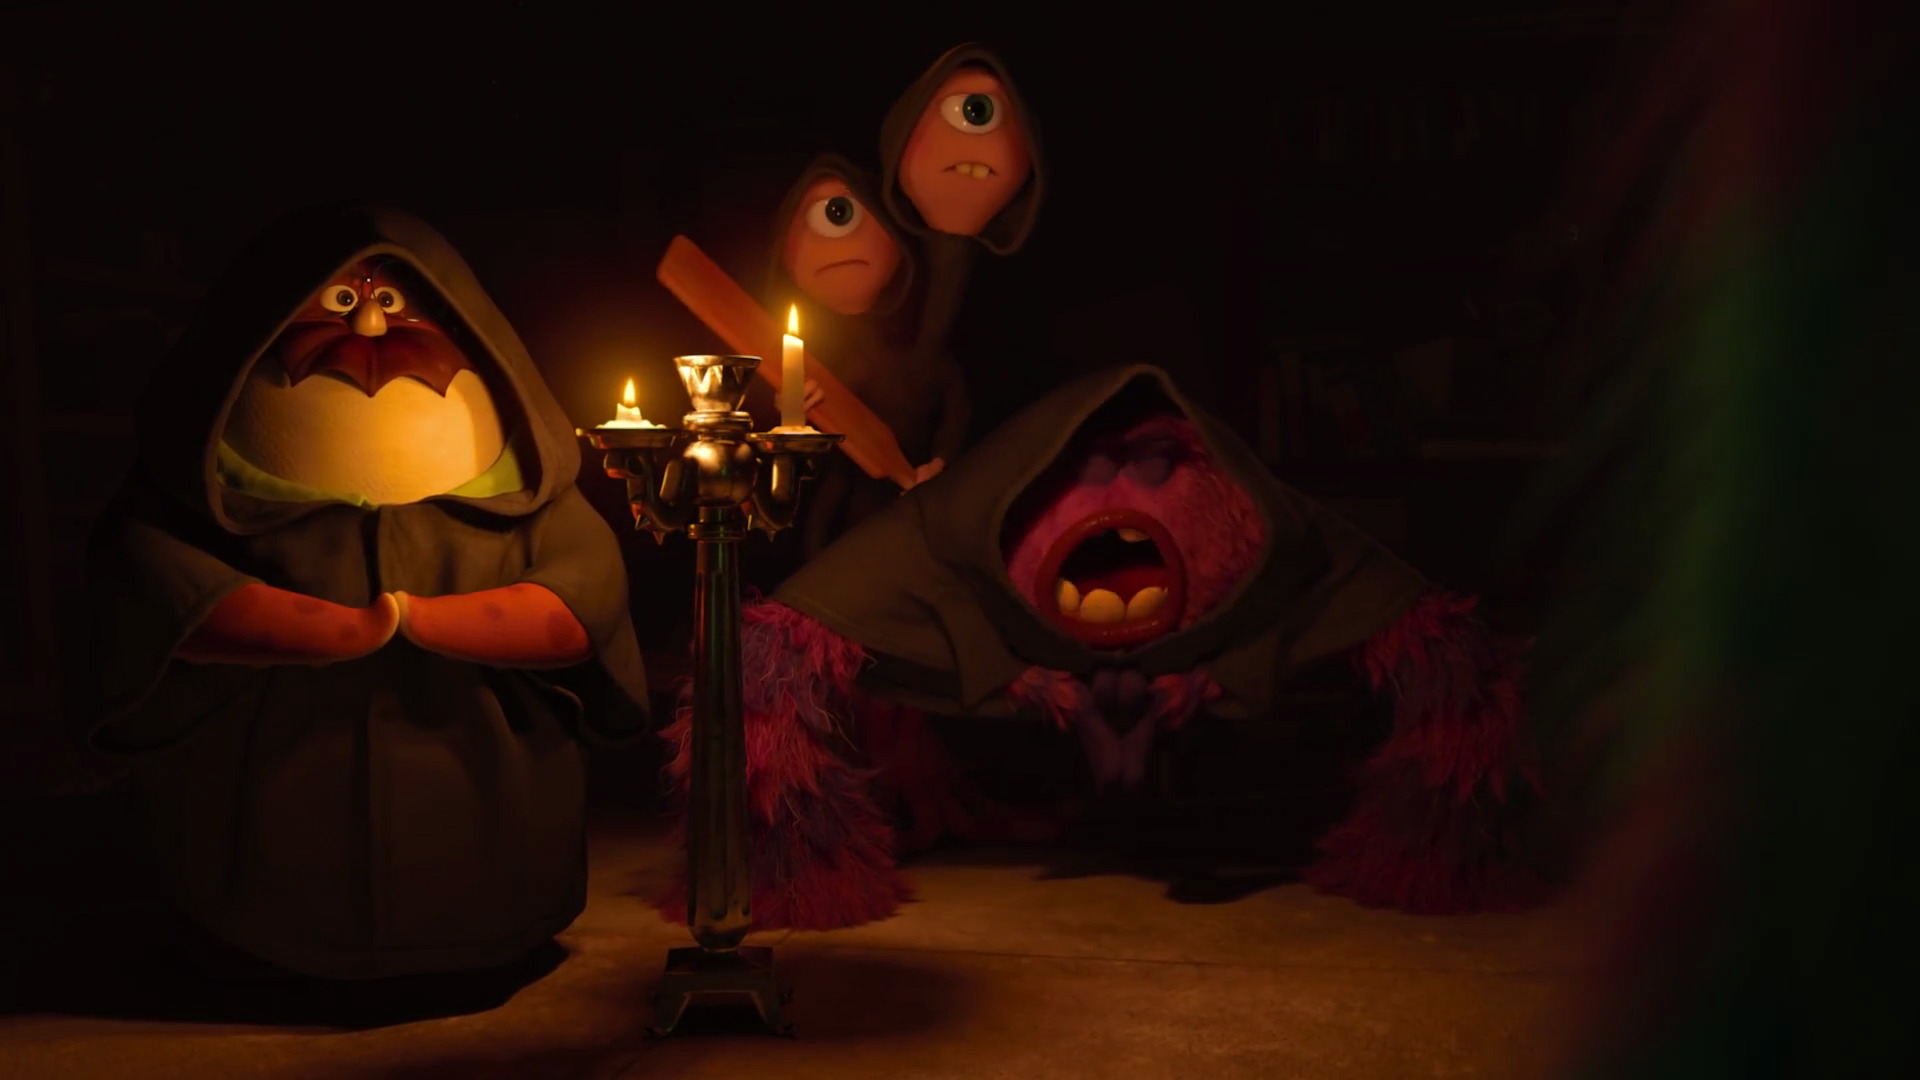 Archivo:Monsters-university-disneyscreencaps.com-4348.jpg ...